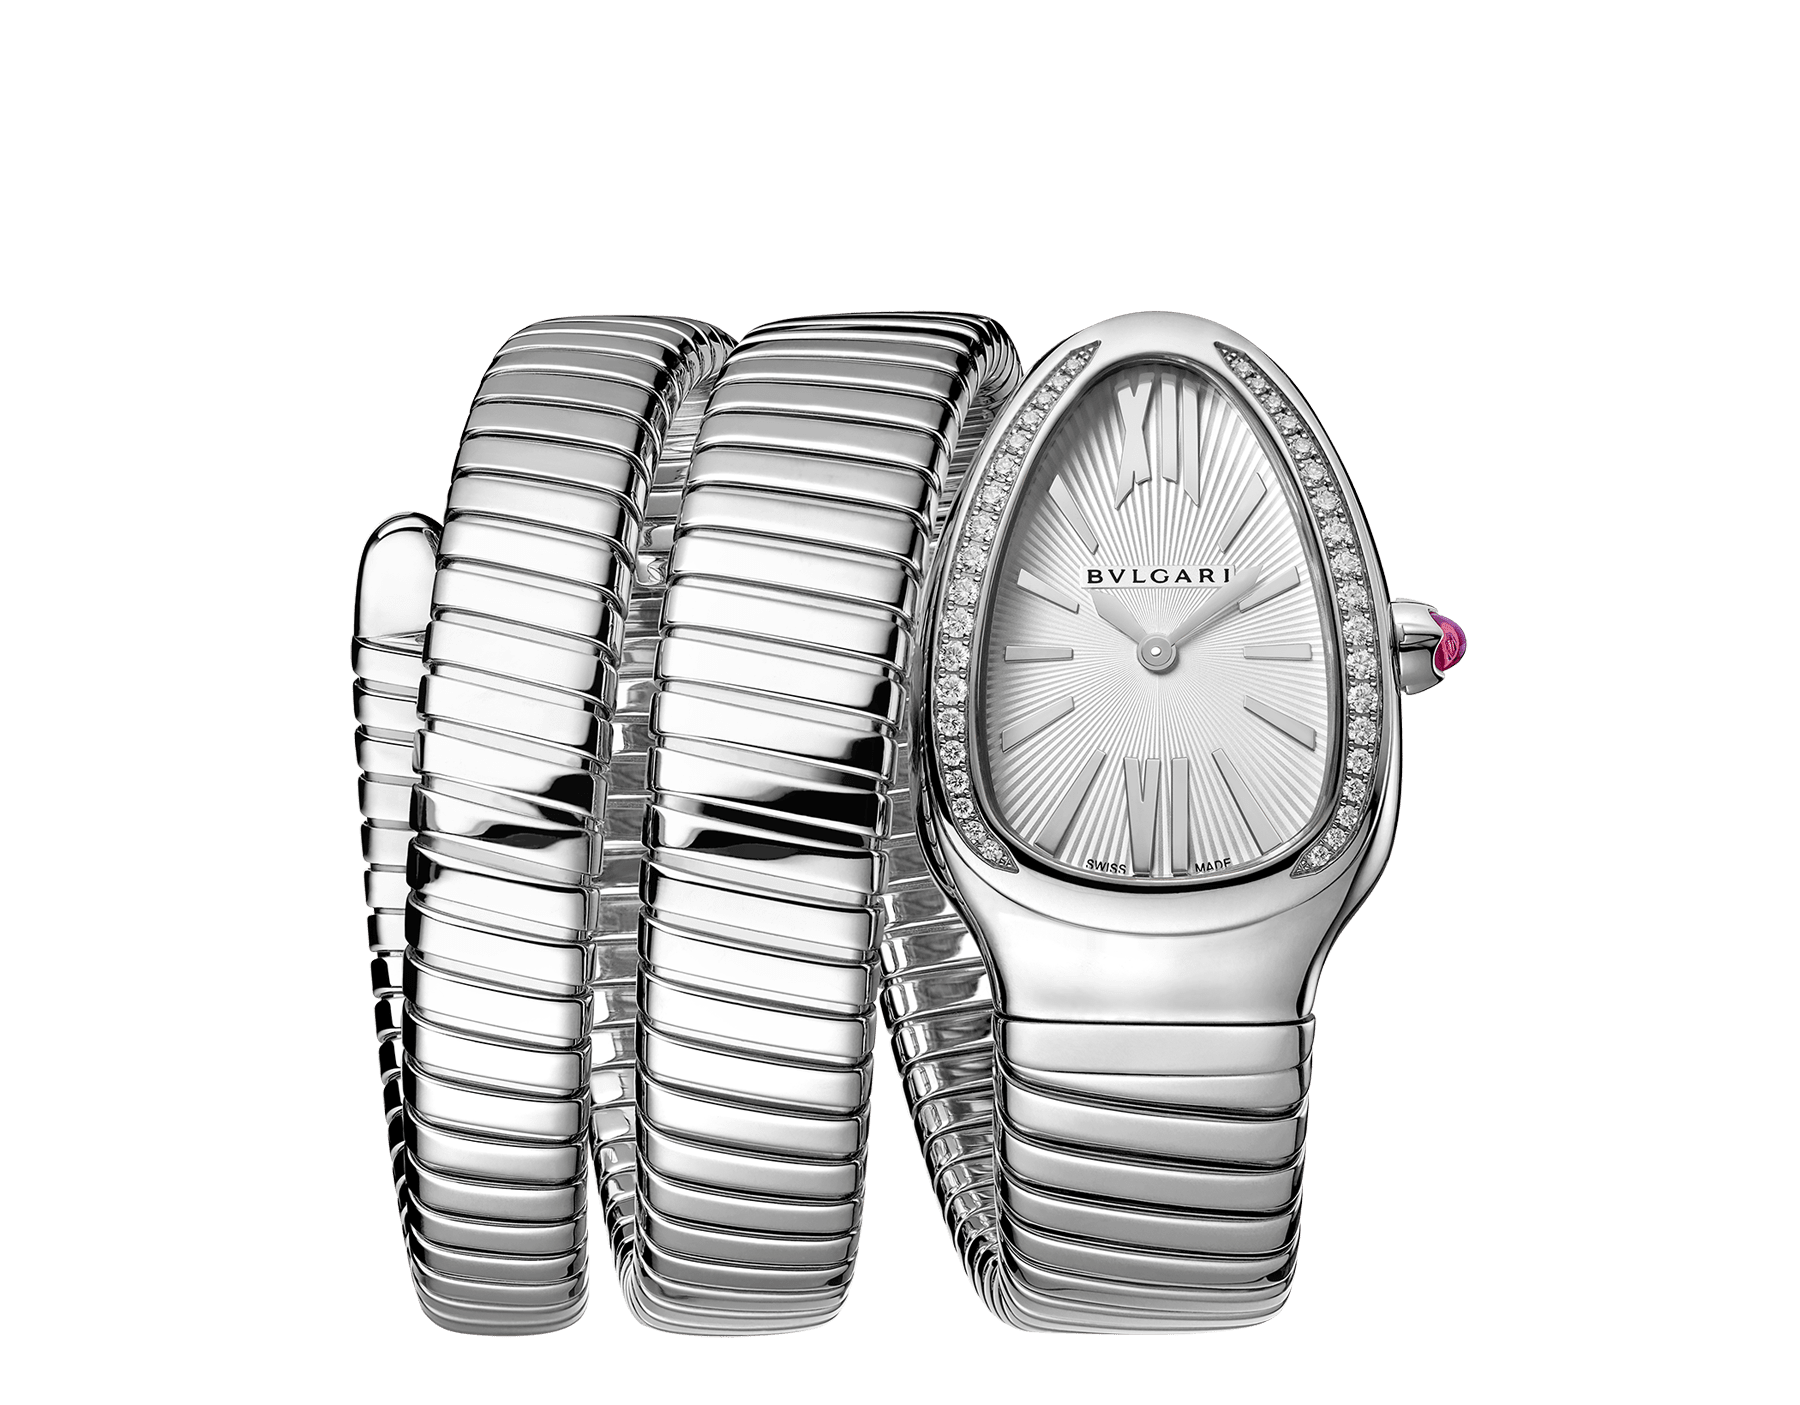 Serpenti Tubogas double spiral watch in stainless steel case and bracelet, bezel set with brilliant cut diamonds and silver opaline dial. 101910 image 1